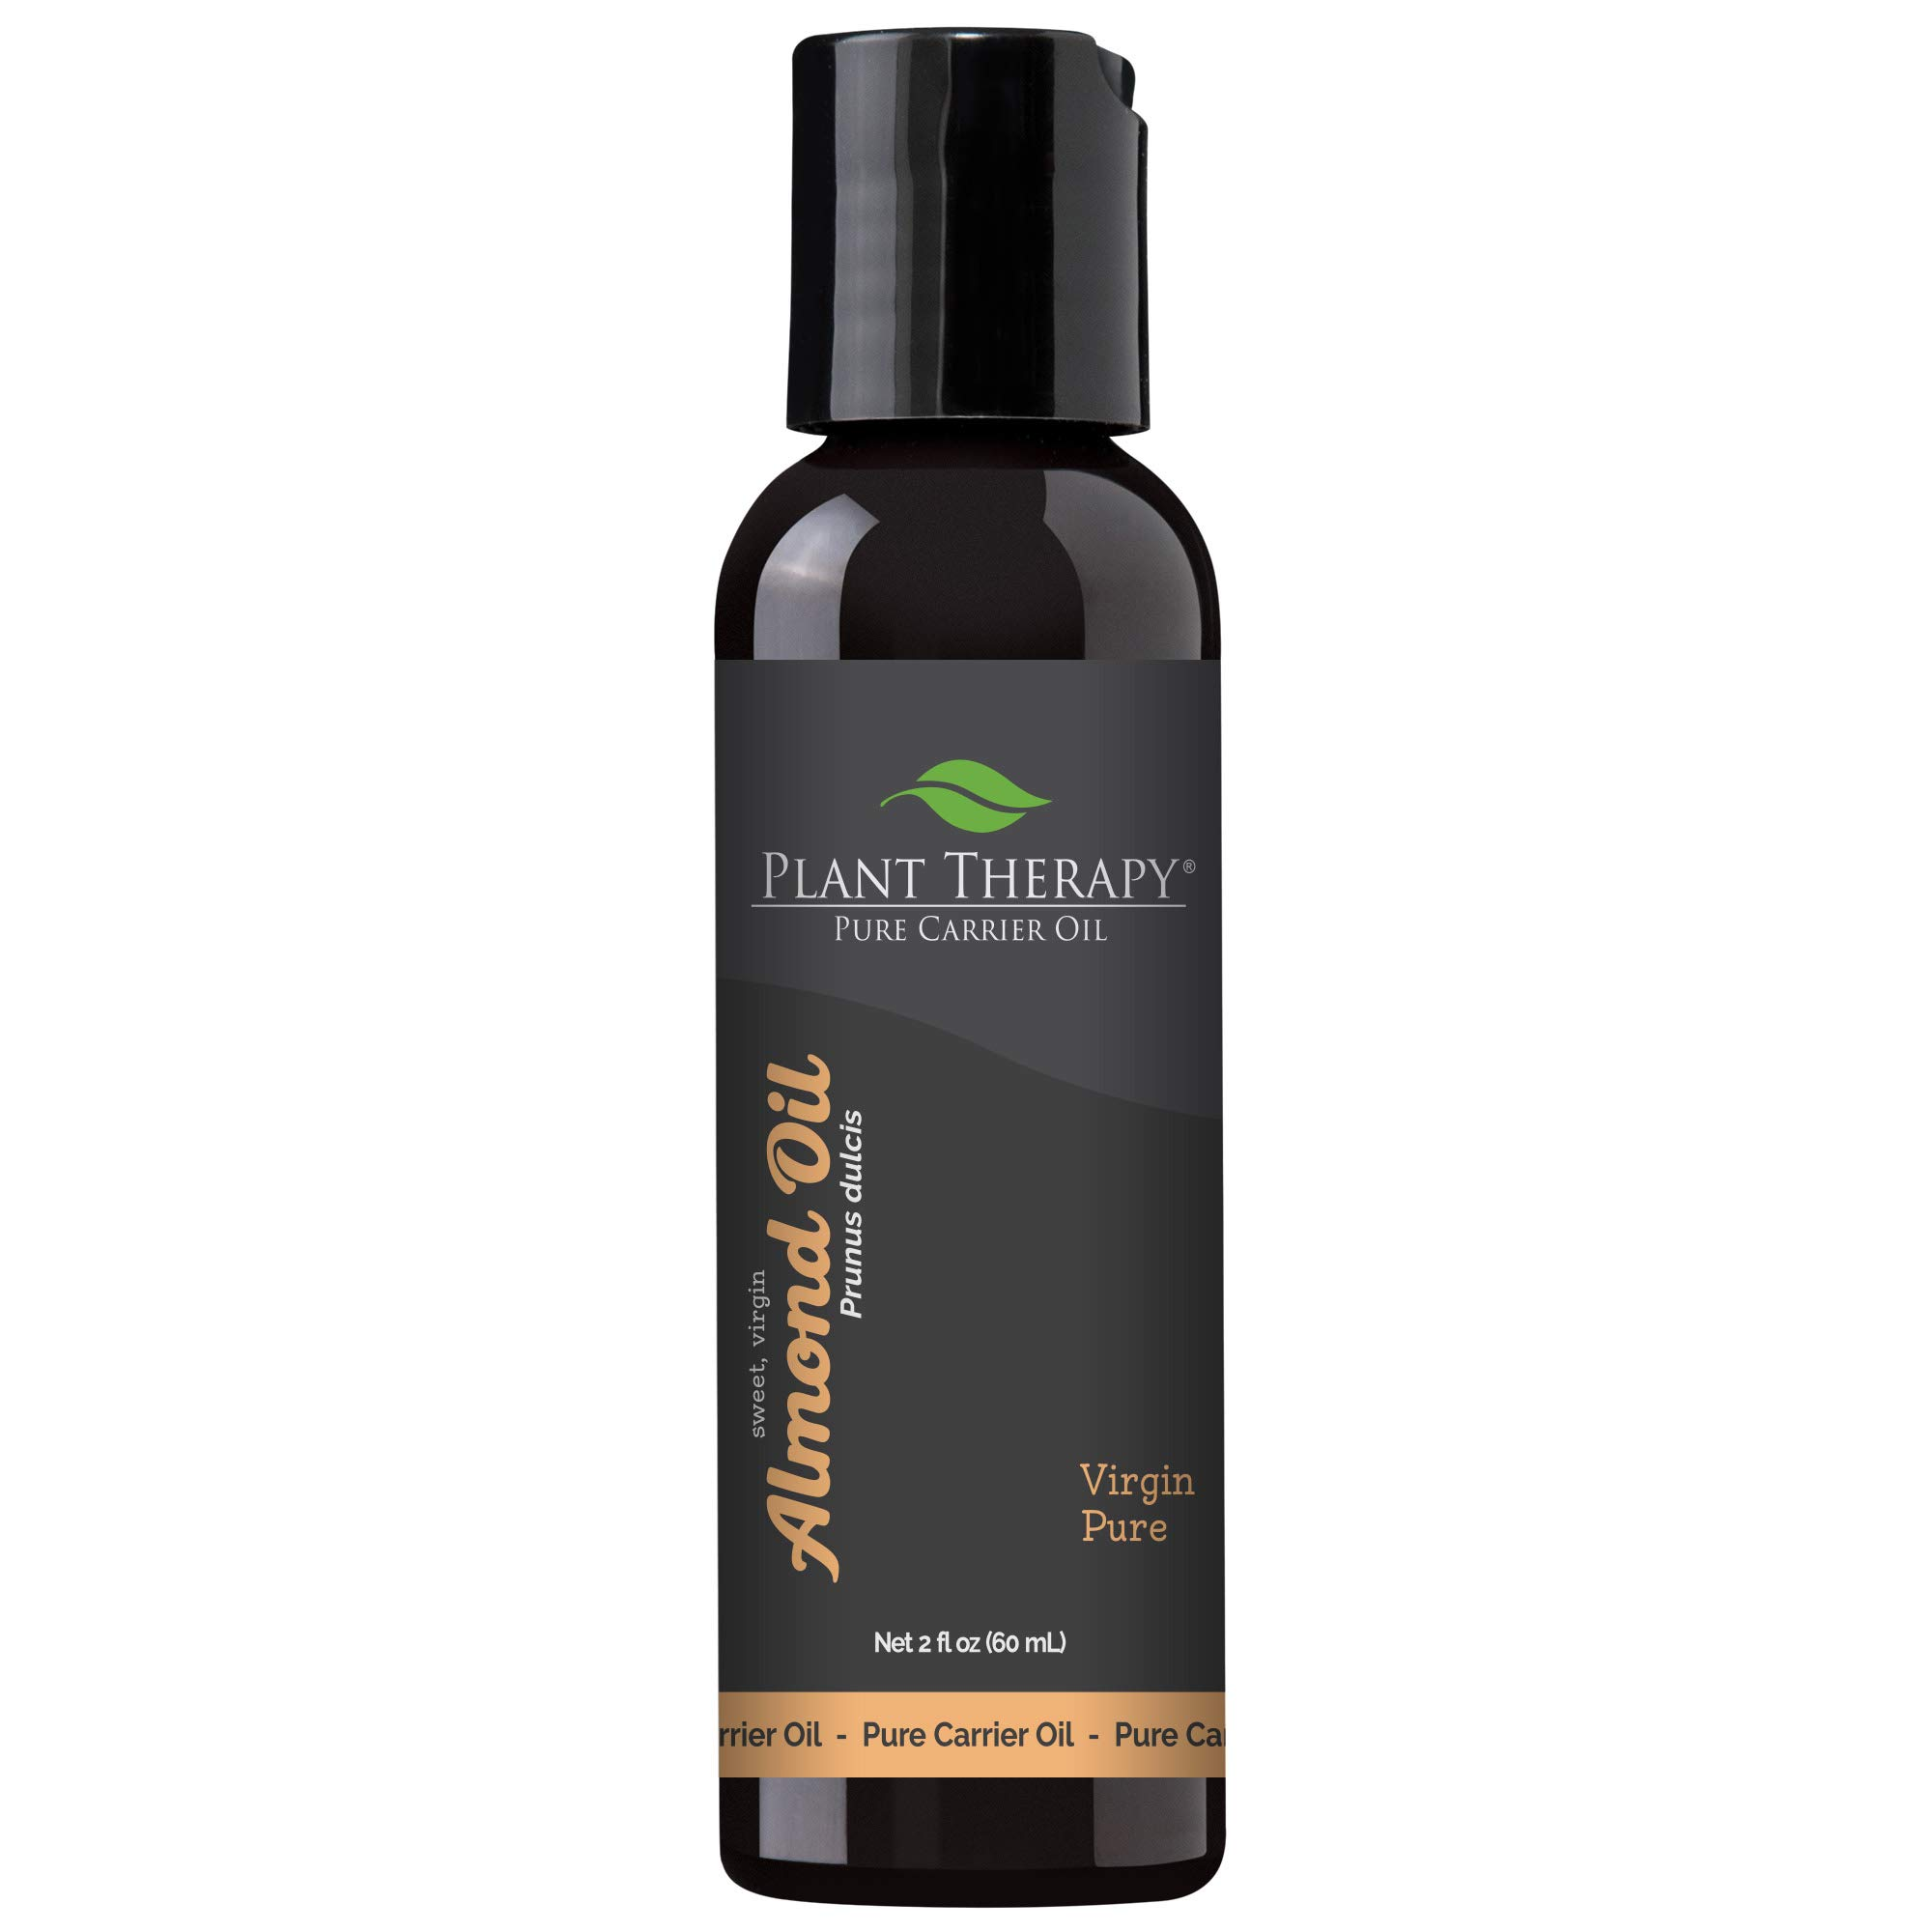 Plant Therapy Sweet Almond Oil - Almond Oil for Hair, Skin, Face, Body & Baby - Aromatherapy Carrier Oil, Natural Moisturizer & Massage 100% Pure, Cold Pressed California Almonds, Made in USA, 2 oz